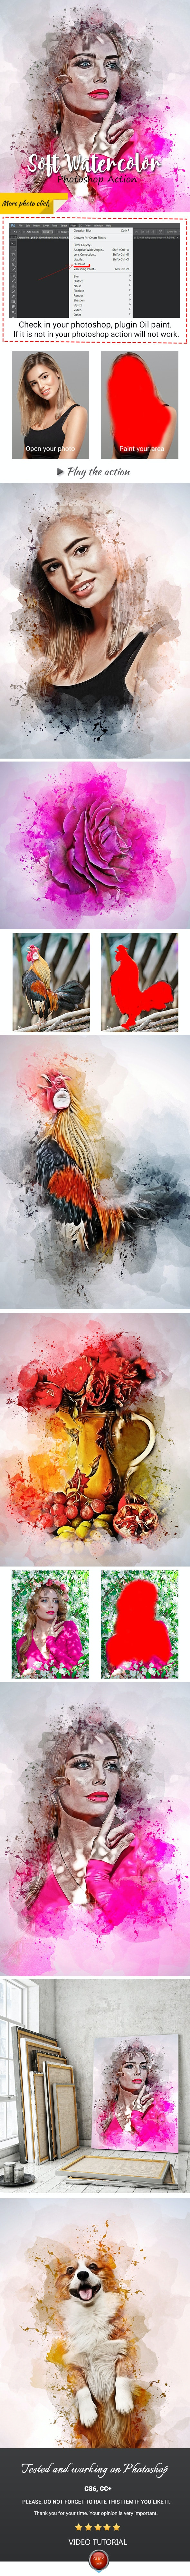 Soft Watercolor Photoshop Action - Photo Effects Actions